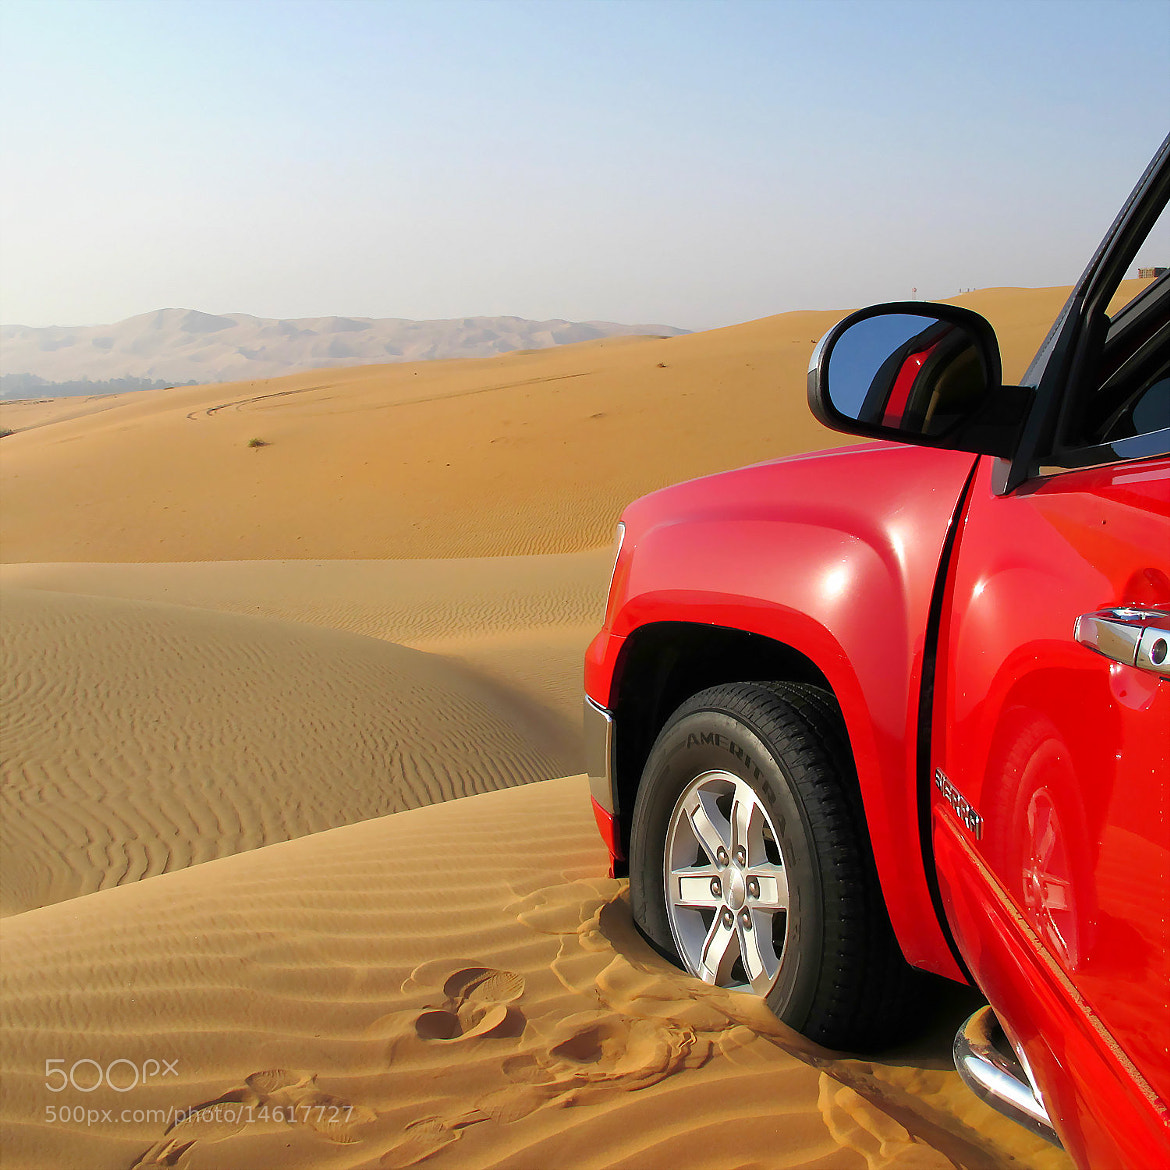 Photograph Car stuck in the sand by Nora Alnansoori on 500px